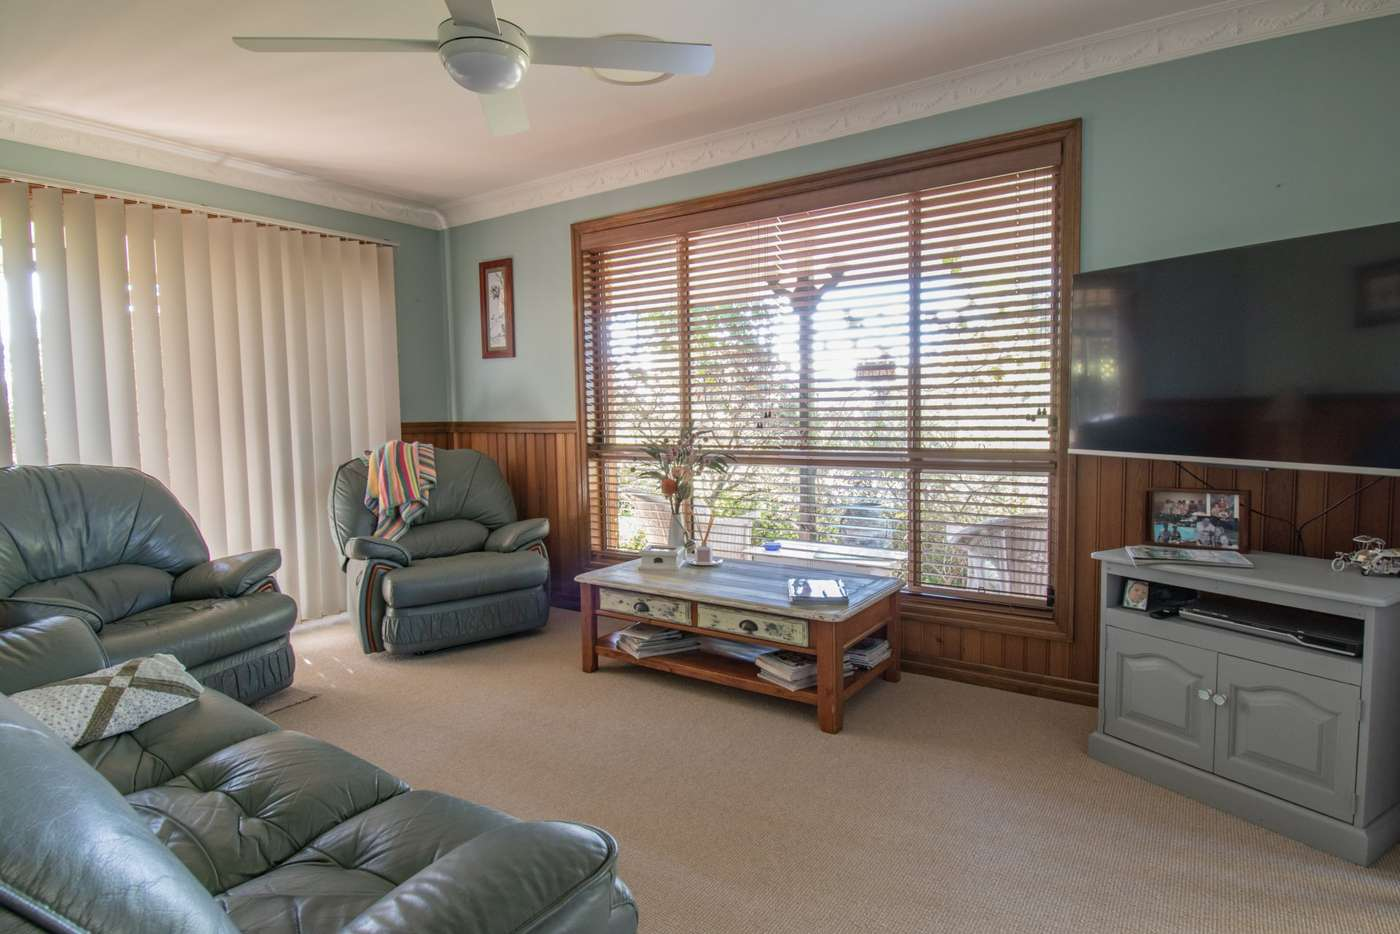 Sixth view of Homely house listing, 8 Matthew Jones Drive, Rosenthal Heights QLD 4370